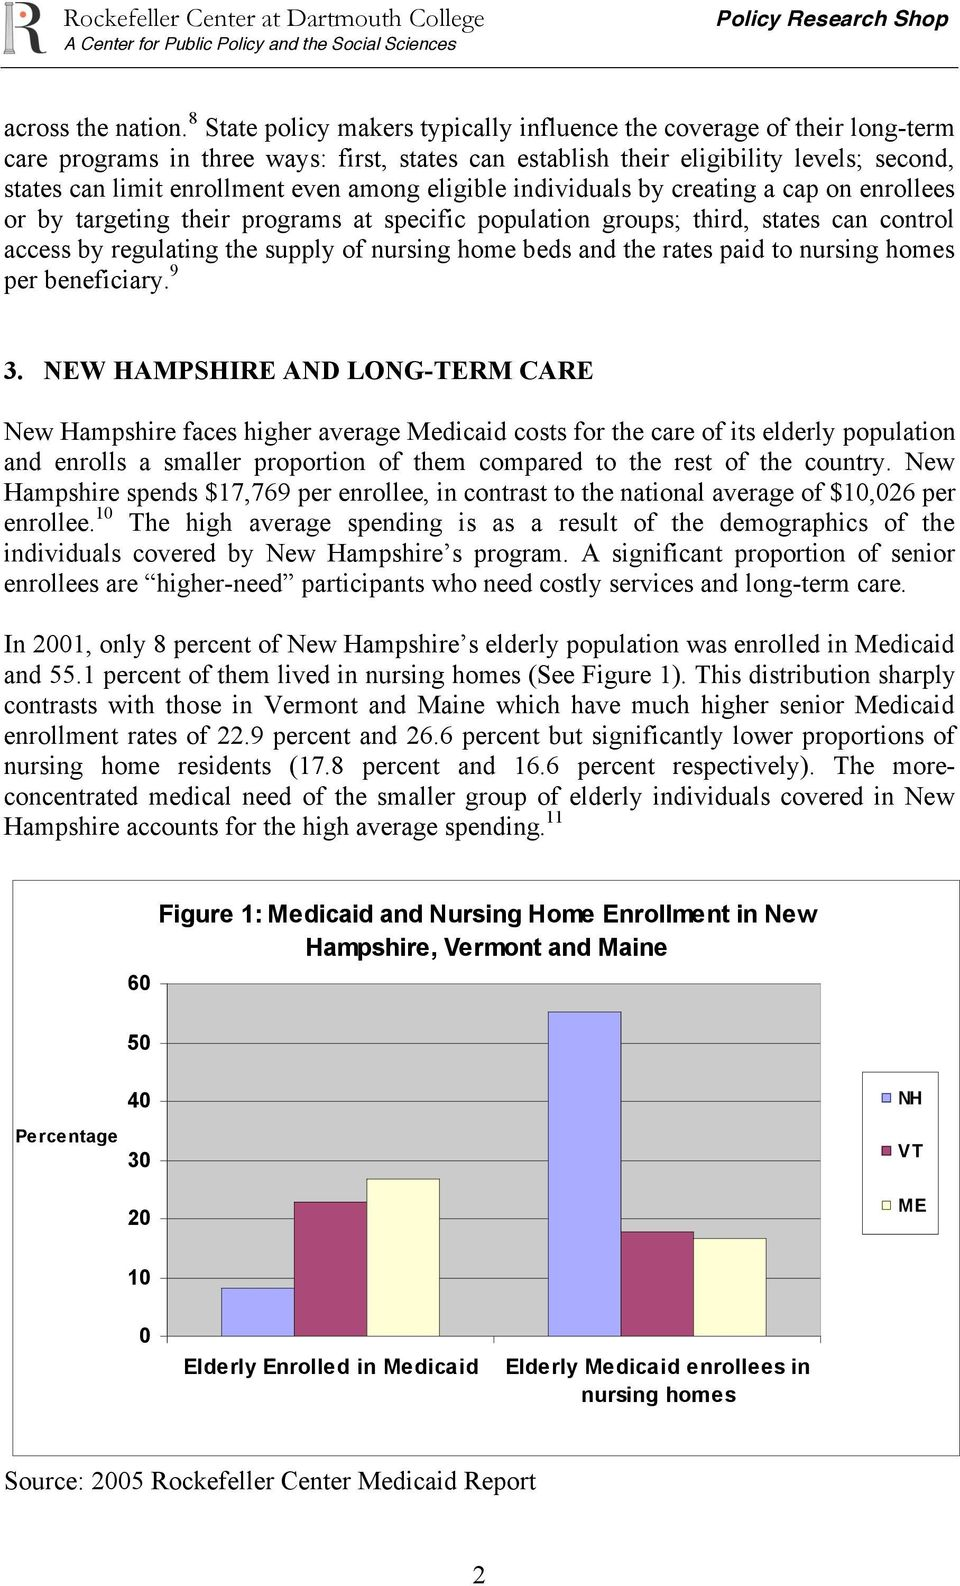 among eligible individuals by creating a cap on enrollees or by targeting their programs at specific population groups; third, states can control access by regulating the supply of nursing home beds